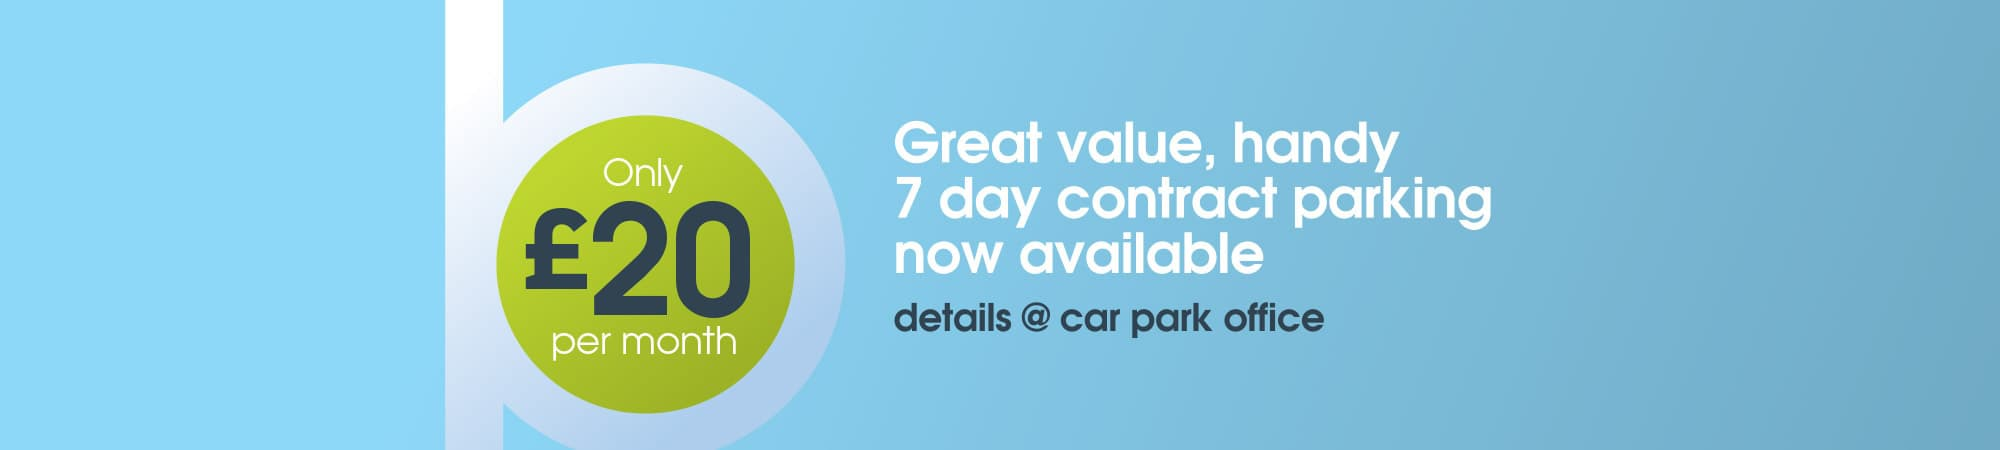 Parking Contract banner